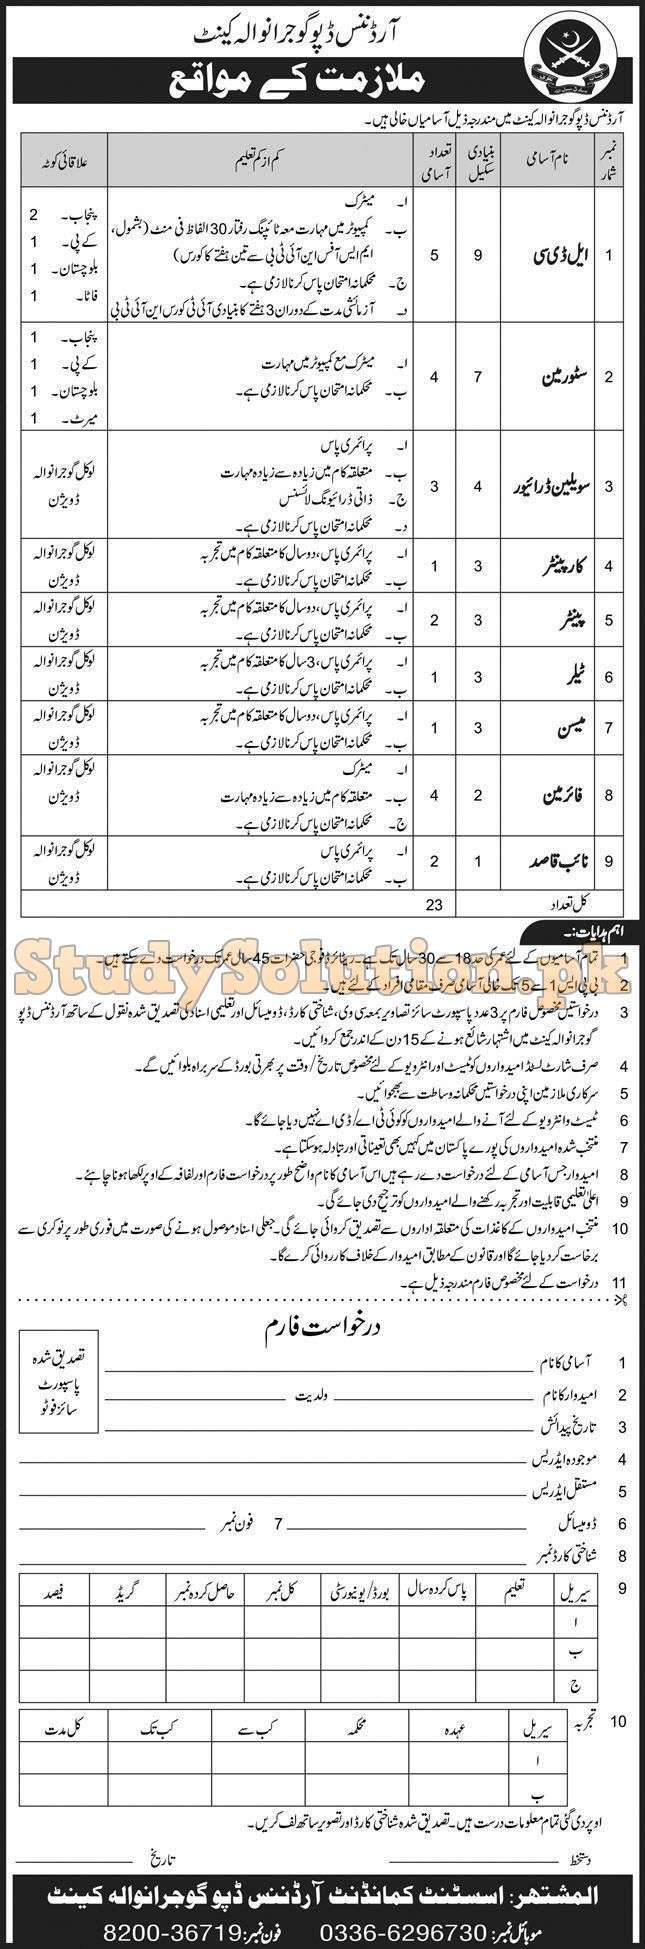 Pak Army Ordnance Depot Gujranwala Latest Civilian Jobs Nov 2020